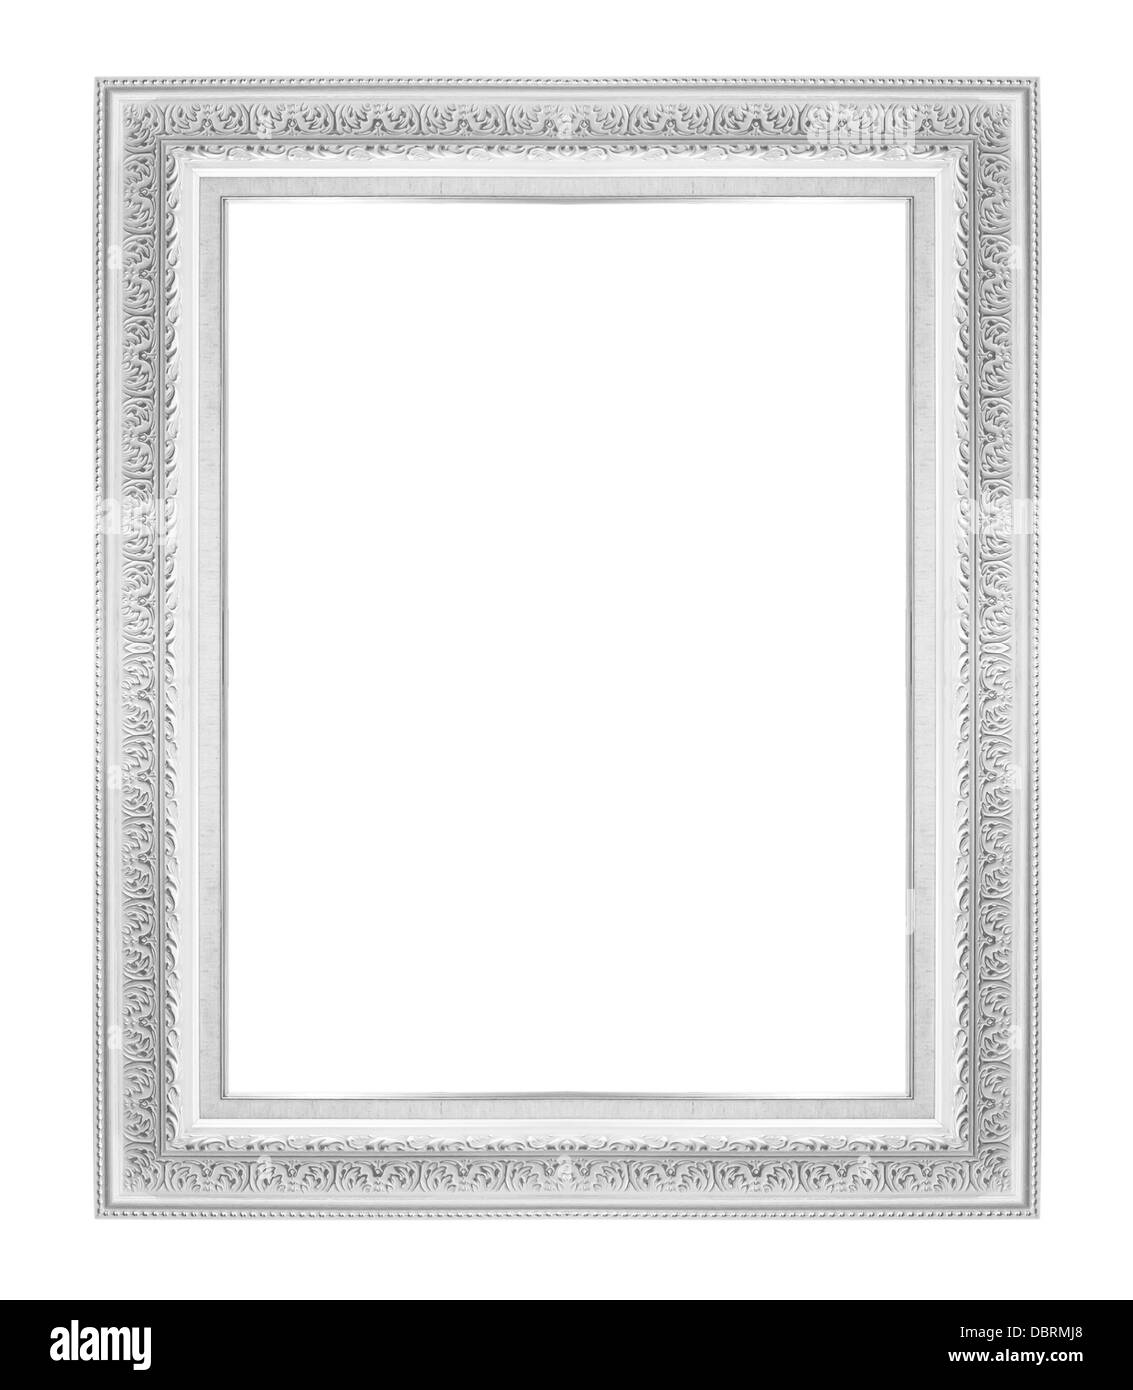 Antique Wood Frame Isolated On White Background - Stock Image